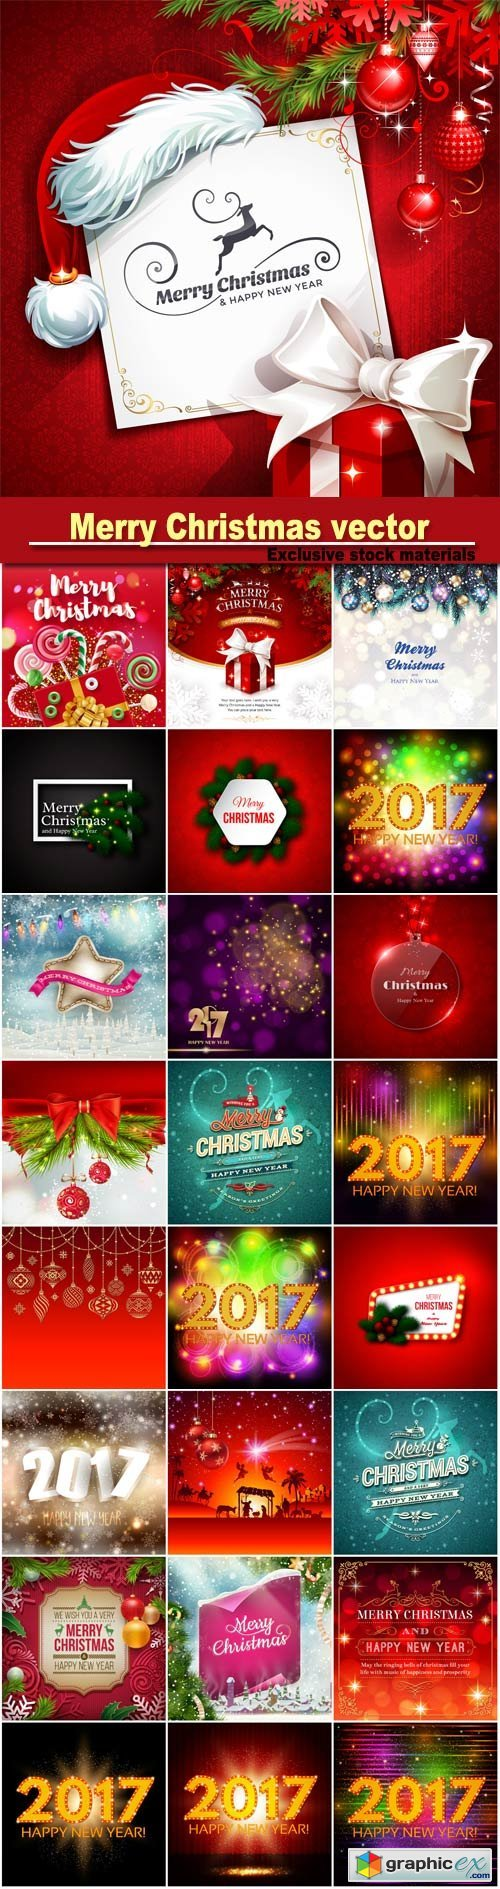 Merry Christmas greeting colorful vector illustration, New year background